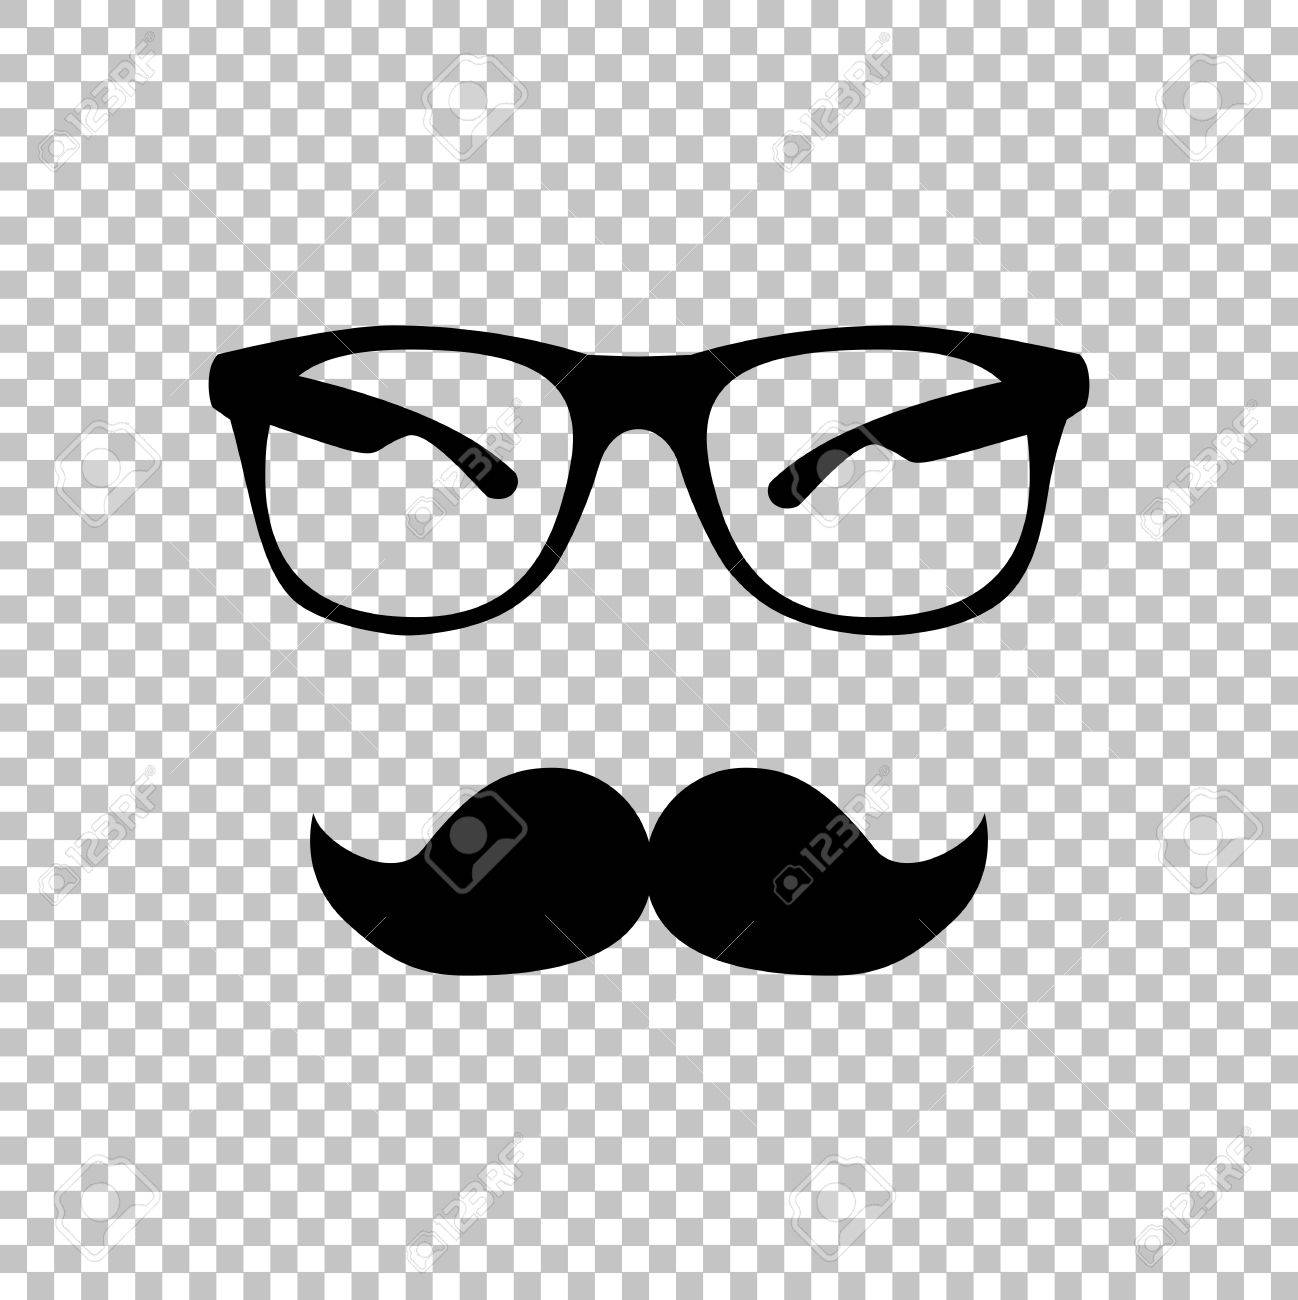 Mustache and Glasses sign. Flat style icon on transparent background.